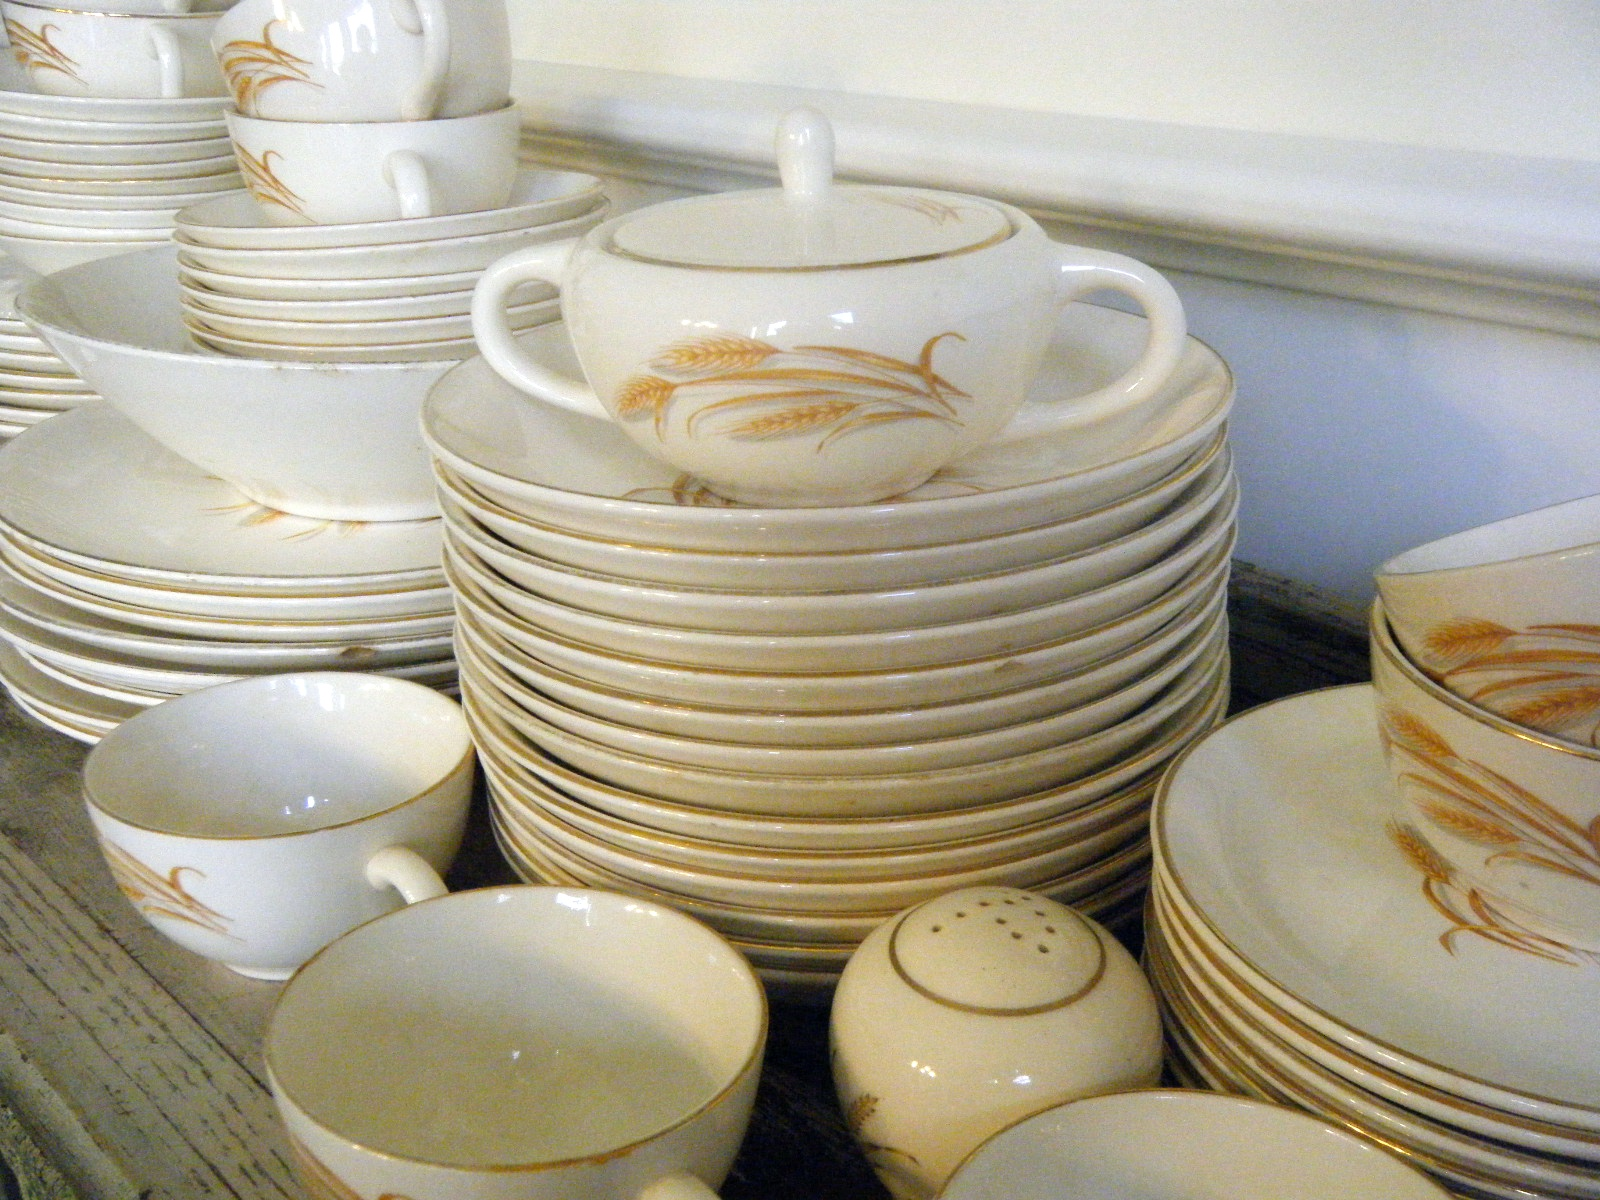 Collection Reflections: Supermarket dinnerware